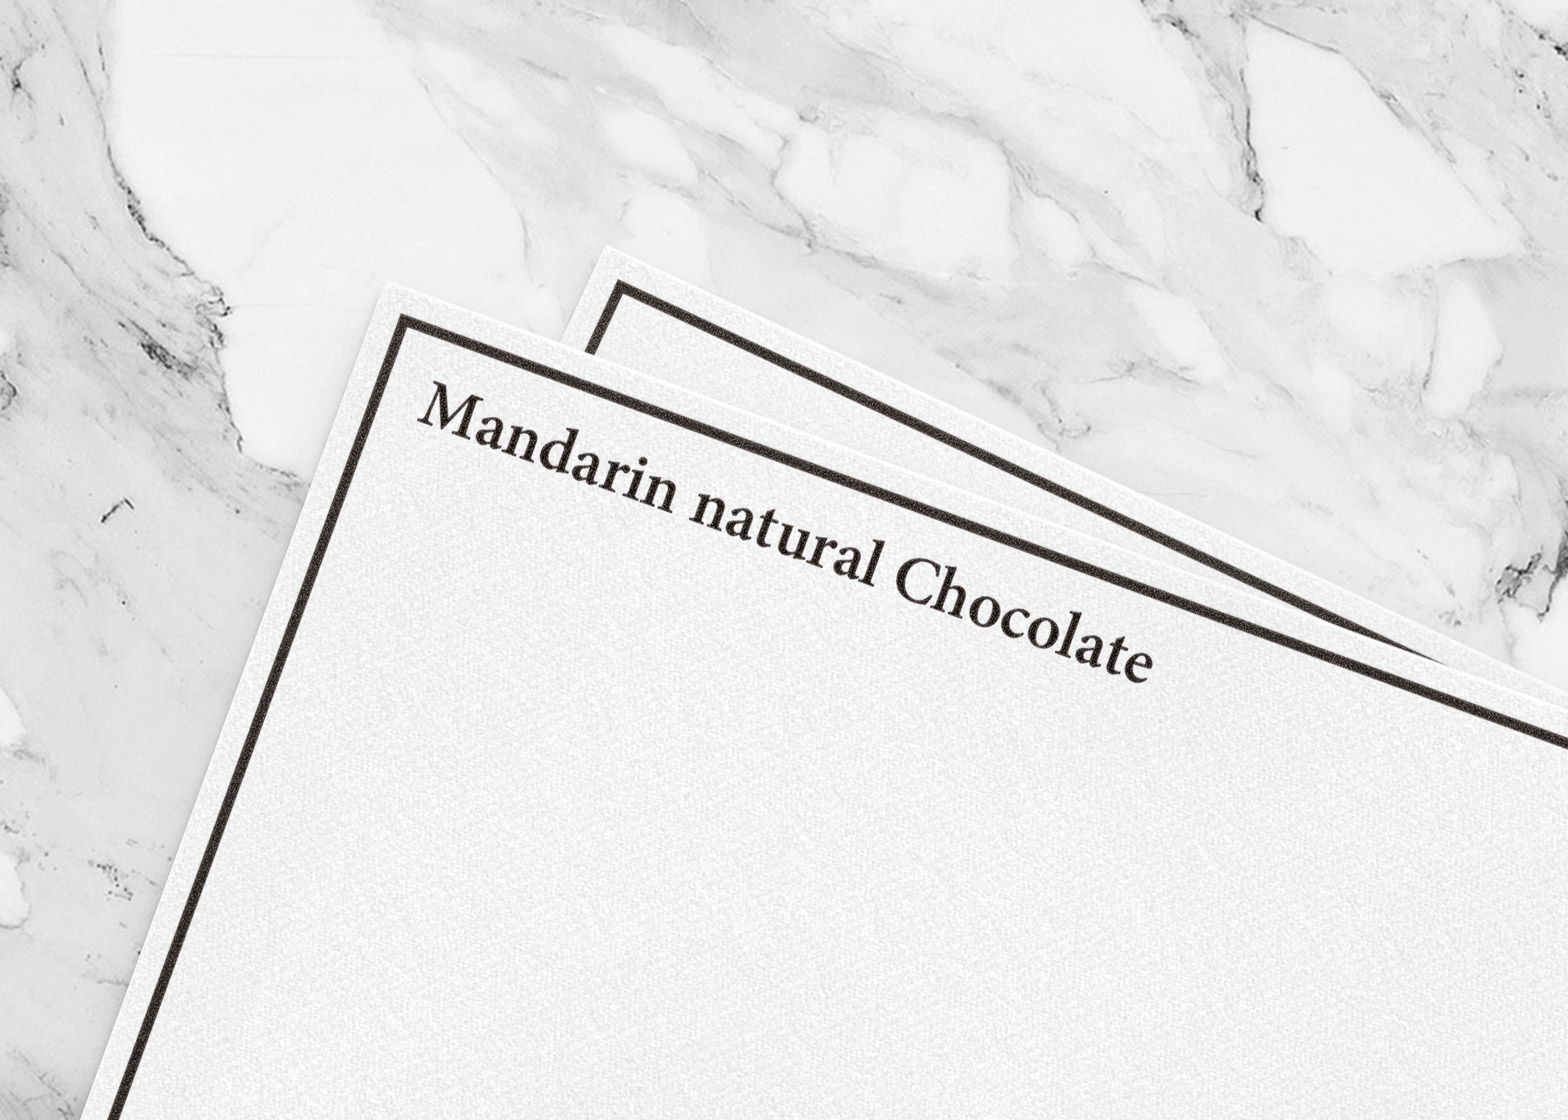 mandarin-natural-chocolate-yuta-takahashi-branding-packaging-design_dezeen_1568_16